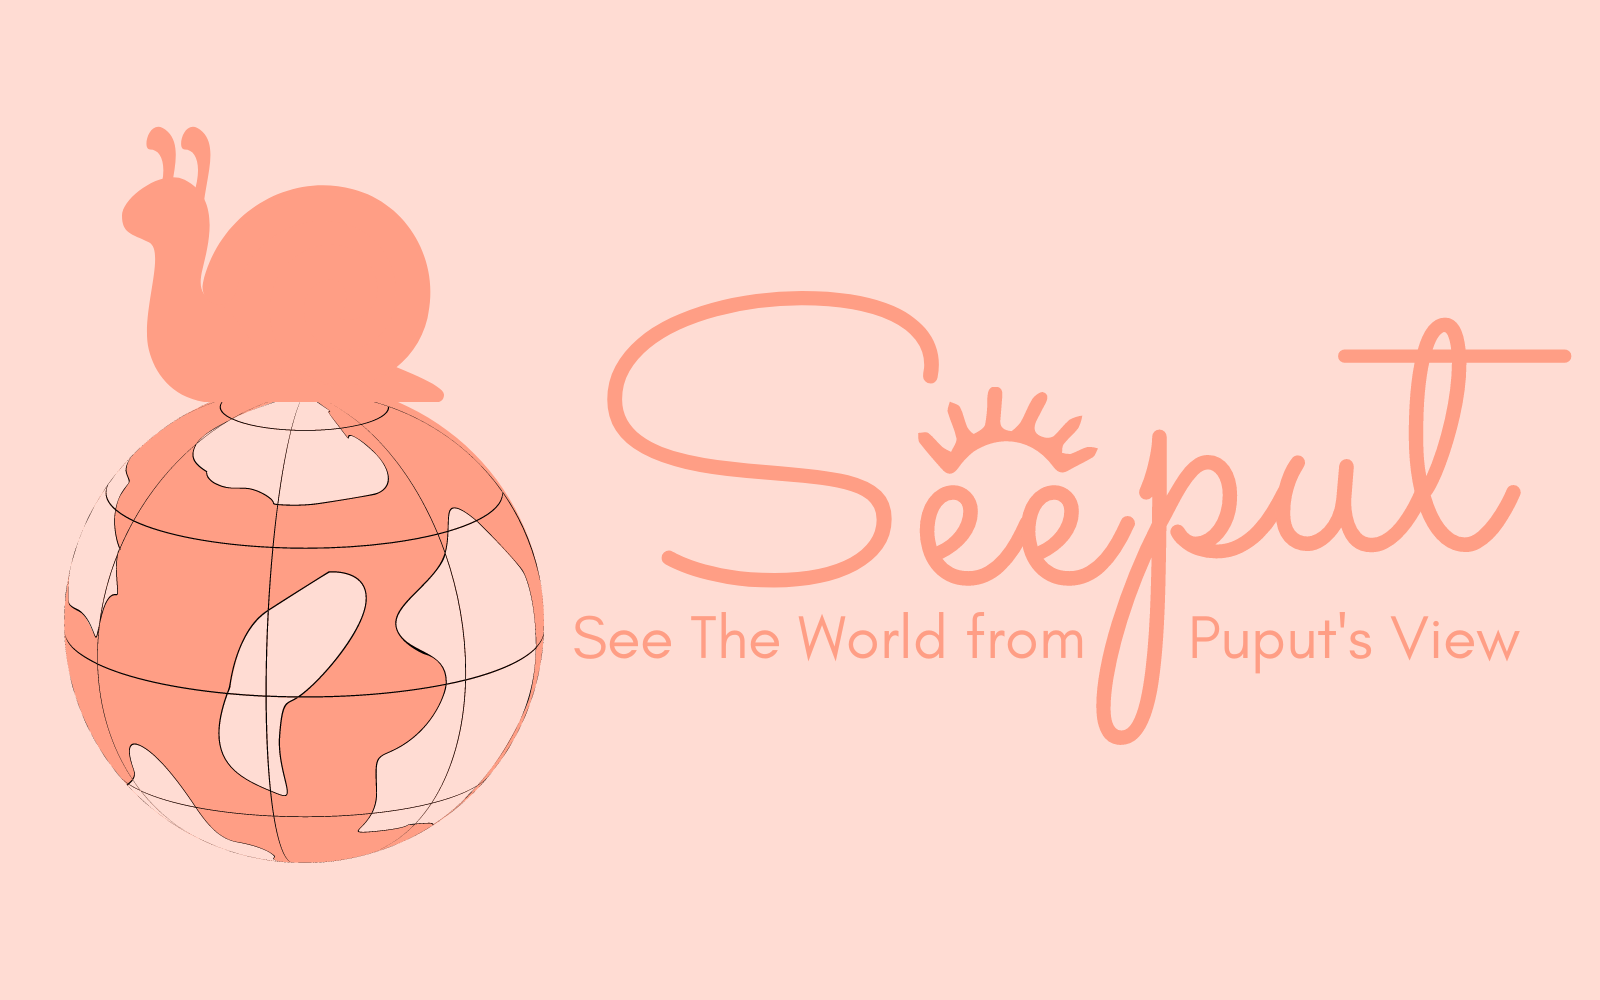 Seeput: See The World from Puput's View